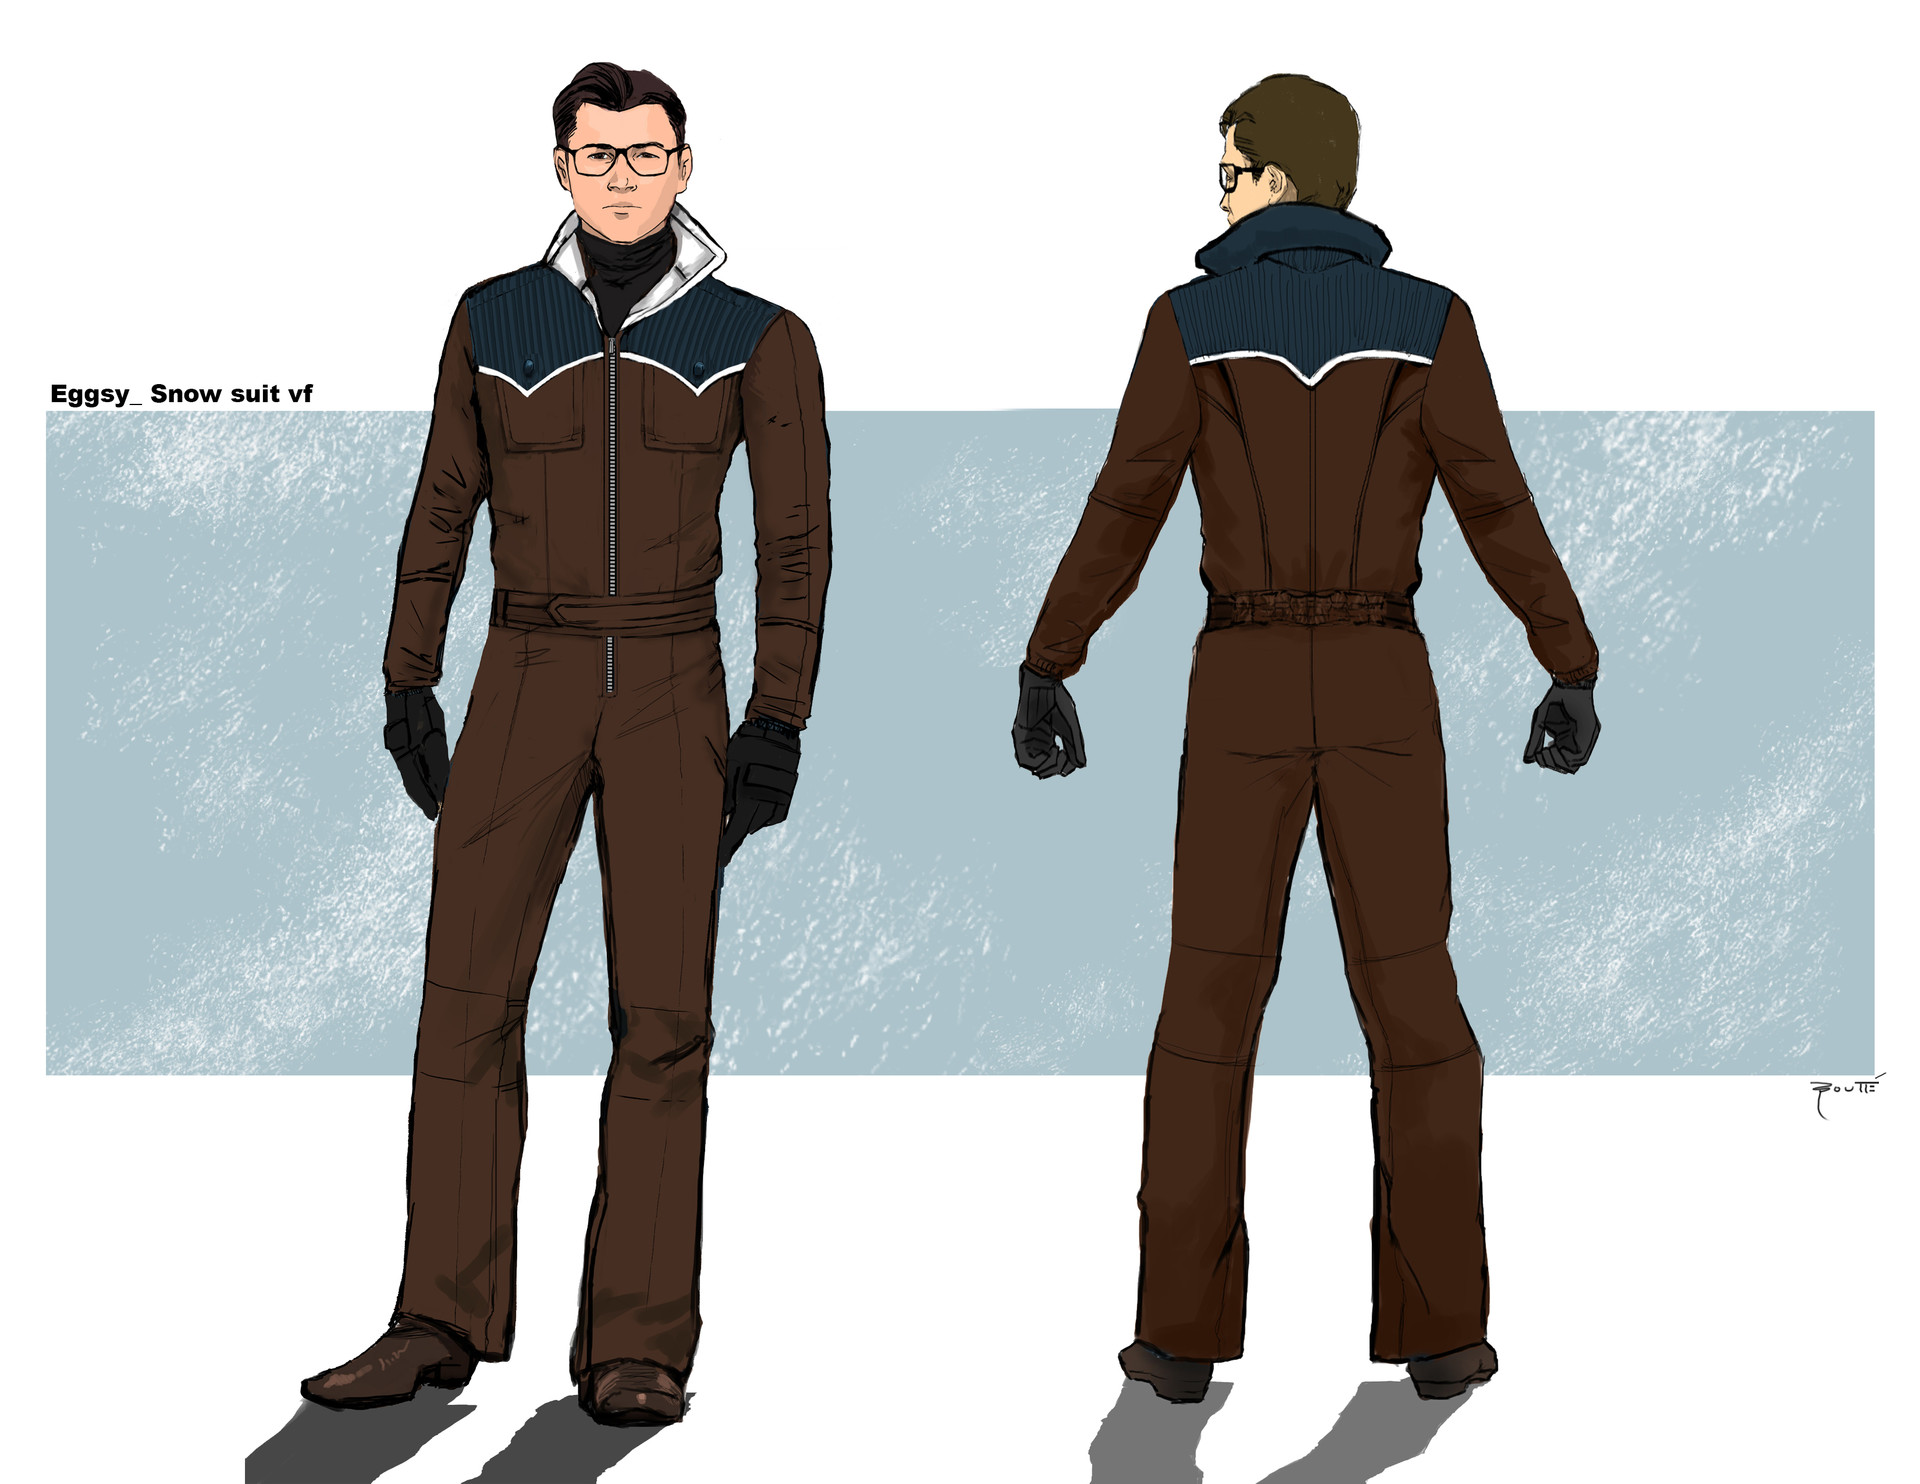 Phillip boutte jr gc eggsy jumpsuit turnaround final 030116